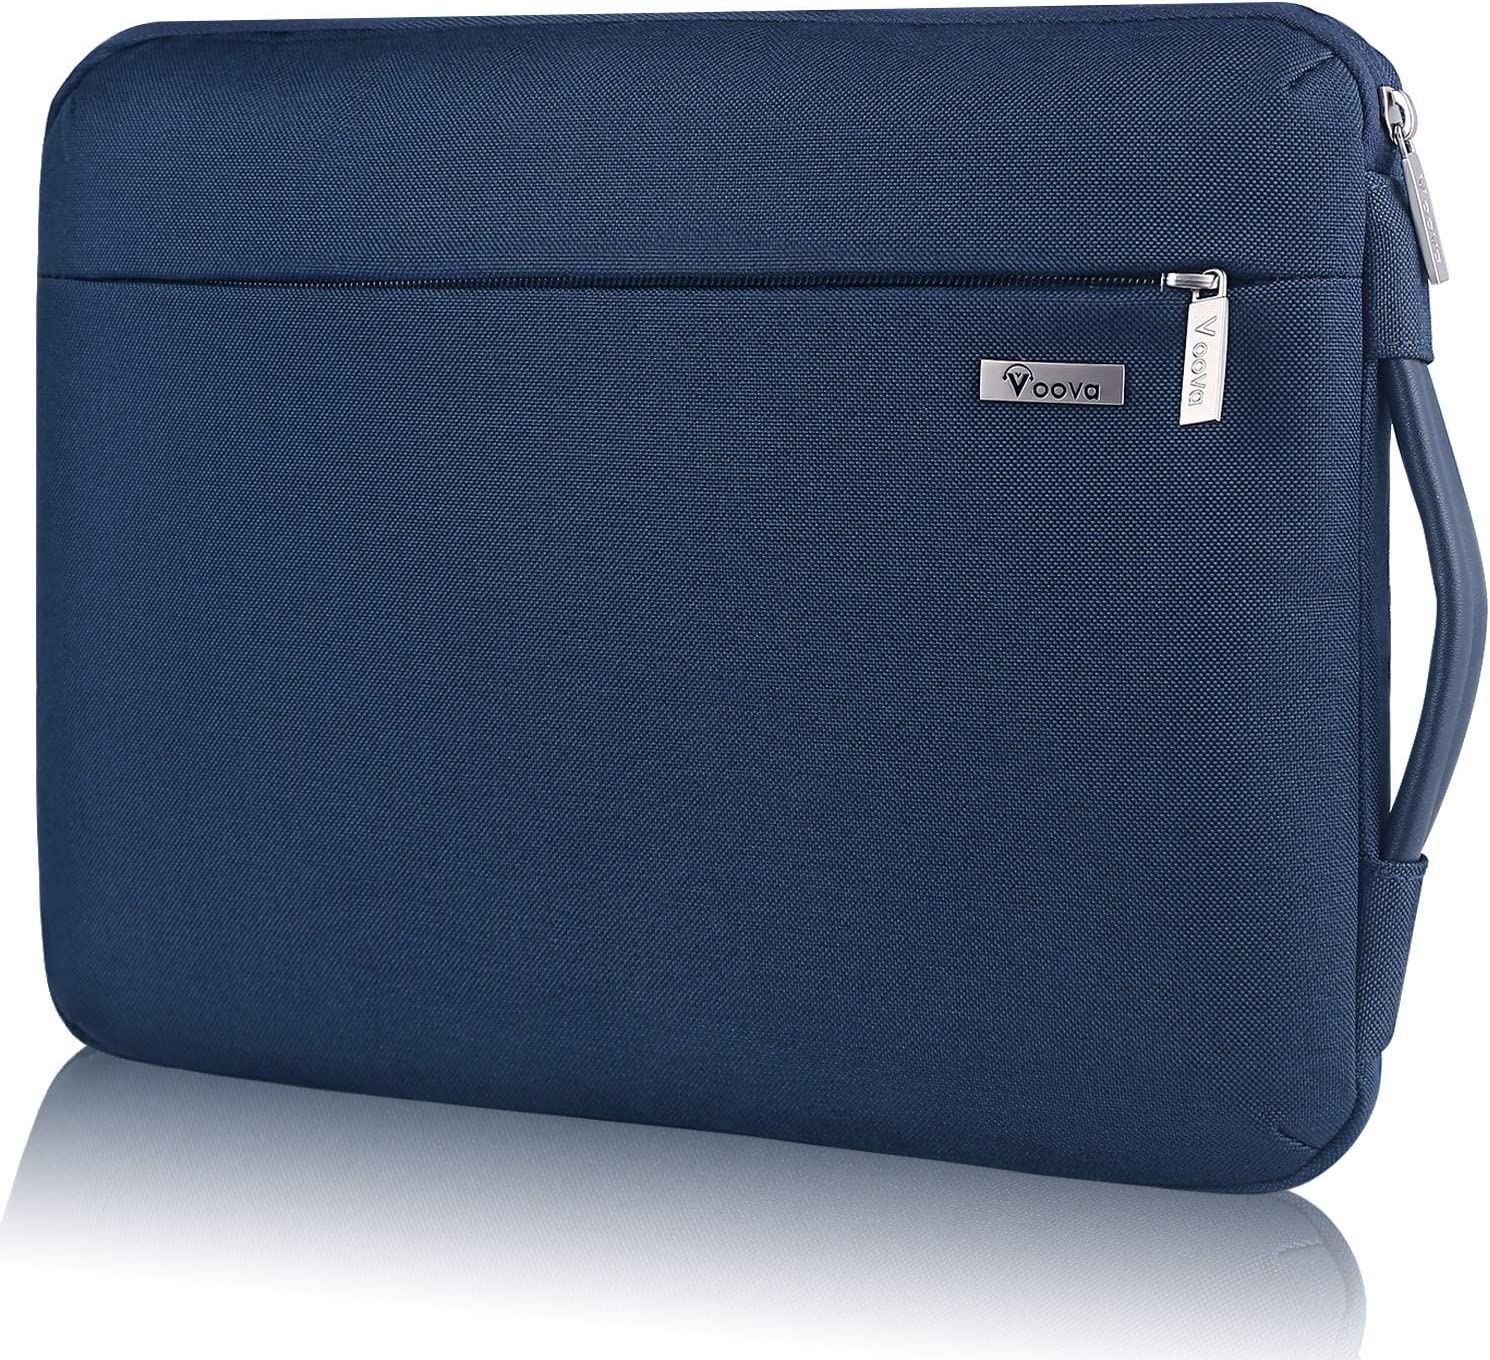 "Voova Laptop Sleeve Case 13 13.3 inch with Handle, Upgrade 360° Protective Computer Carrying Bag Compatible MacBook Air/MacBook Pro/13.5"" Surface Book 3 2, Chromebook Cover with Organizer Pocket,Blue"